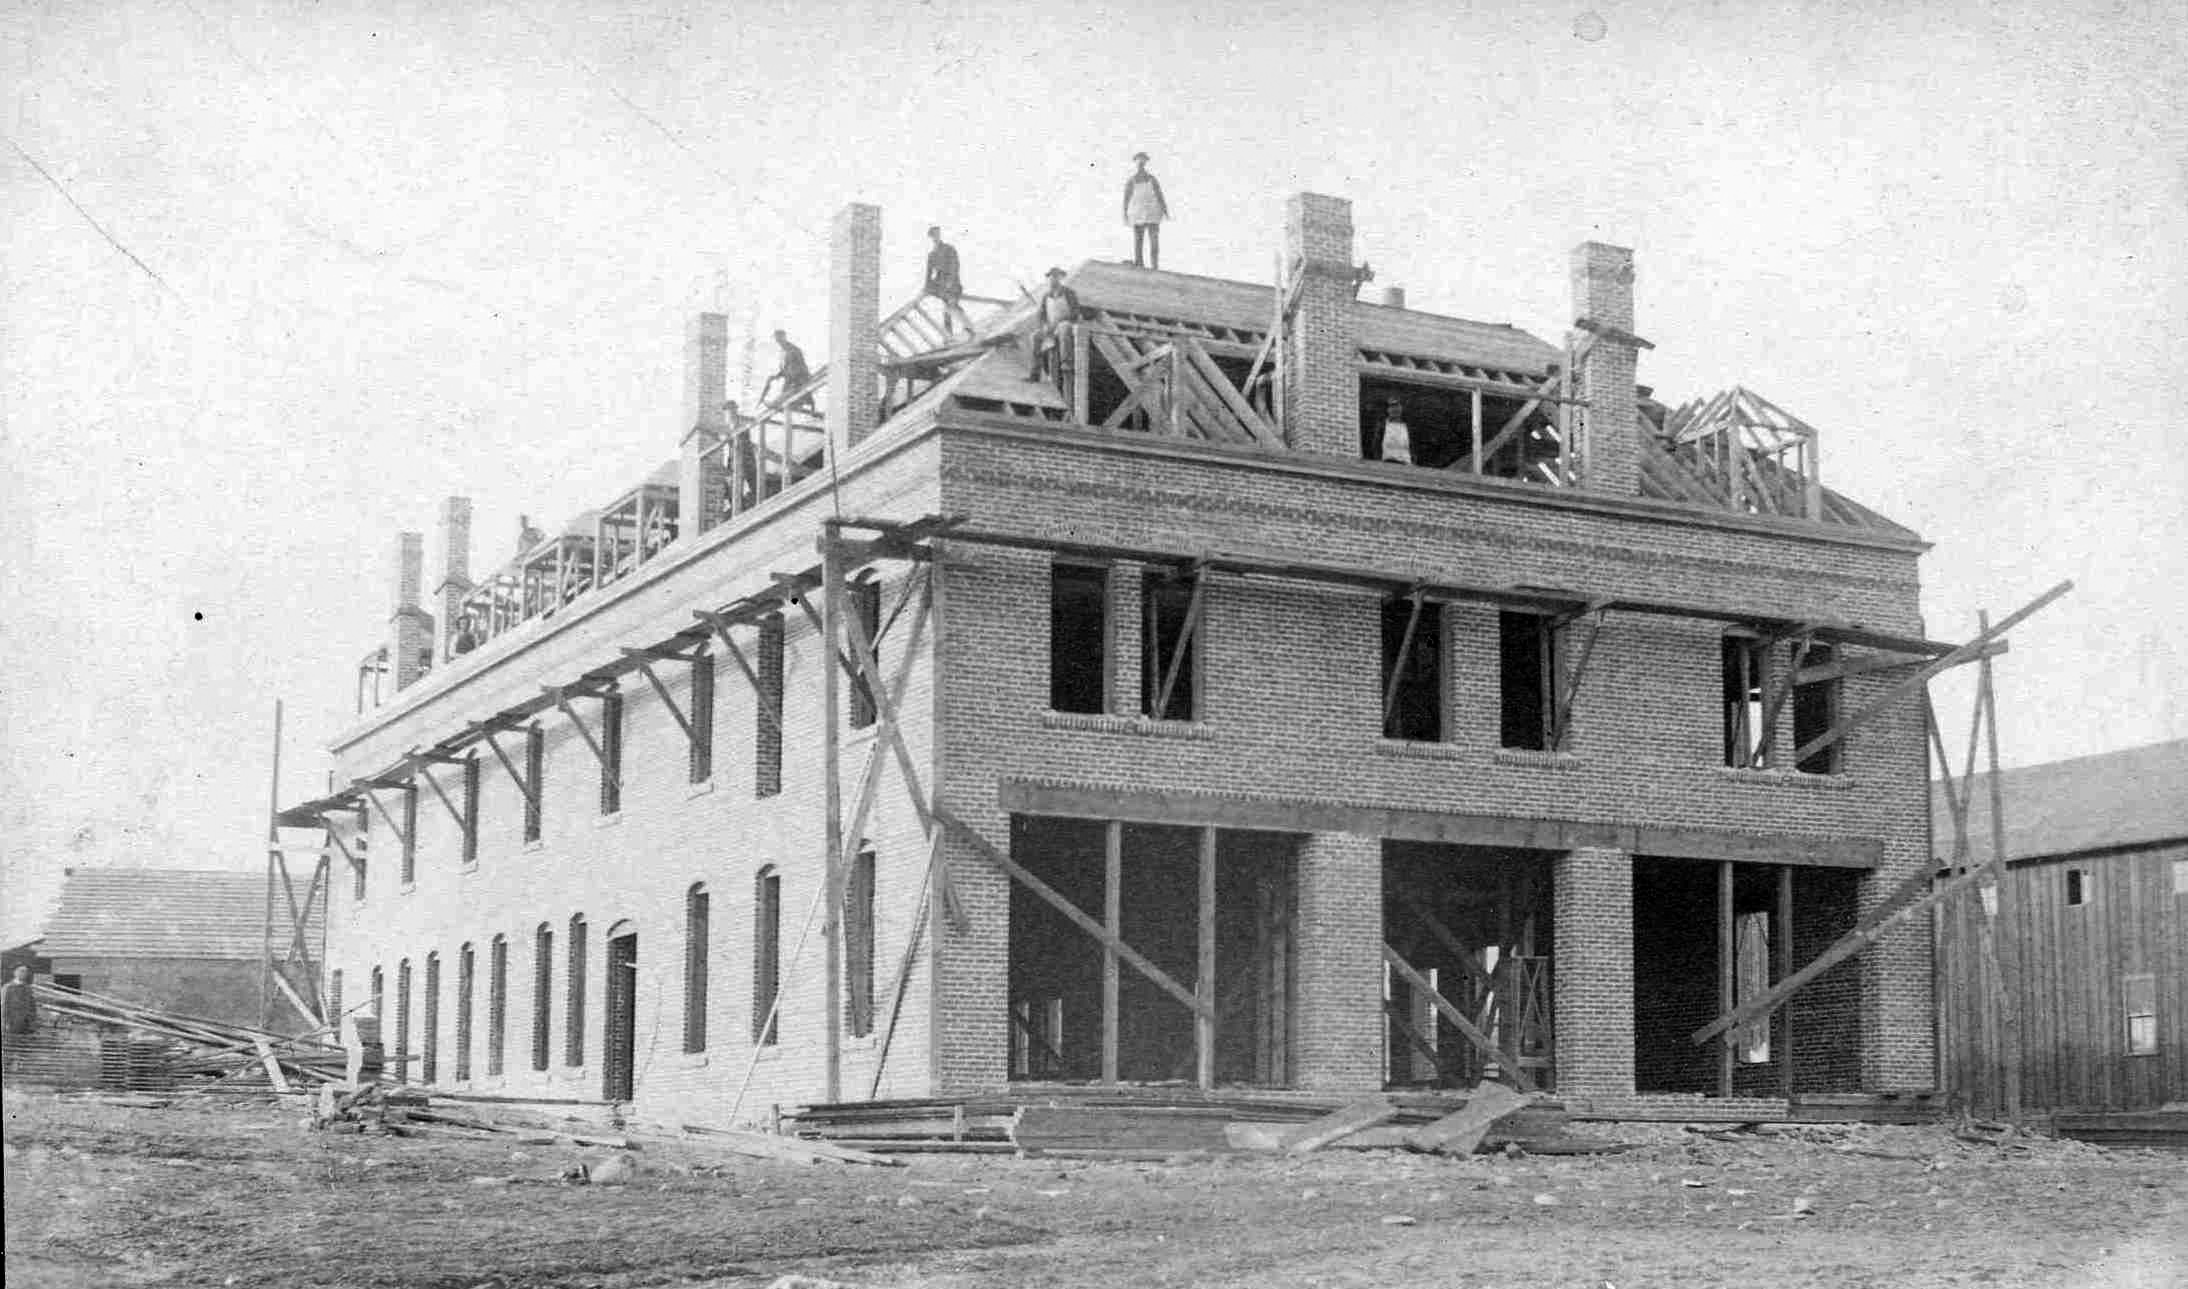 An 1893 black and white photo; construction of the brick Clark Hotel that was to become the first Courthouse for Chelan County